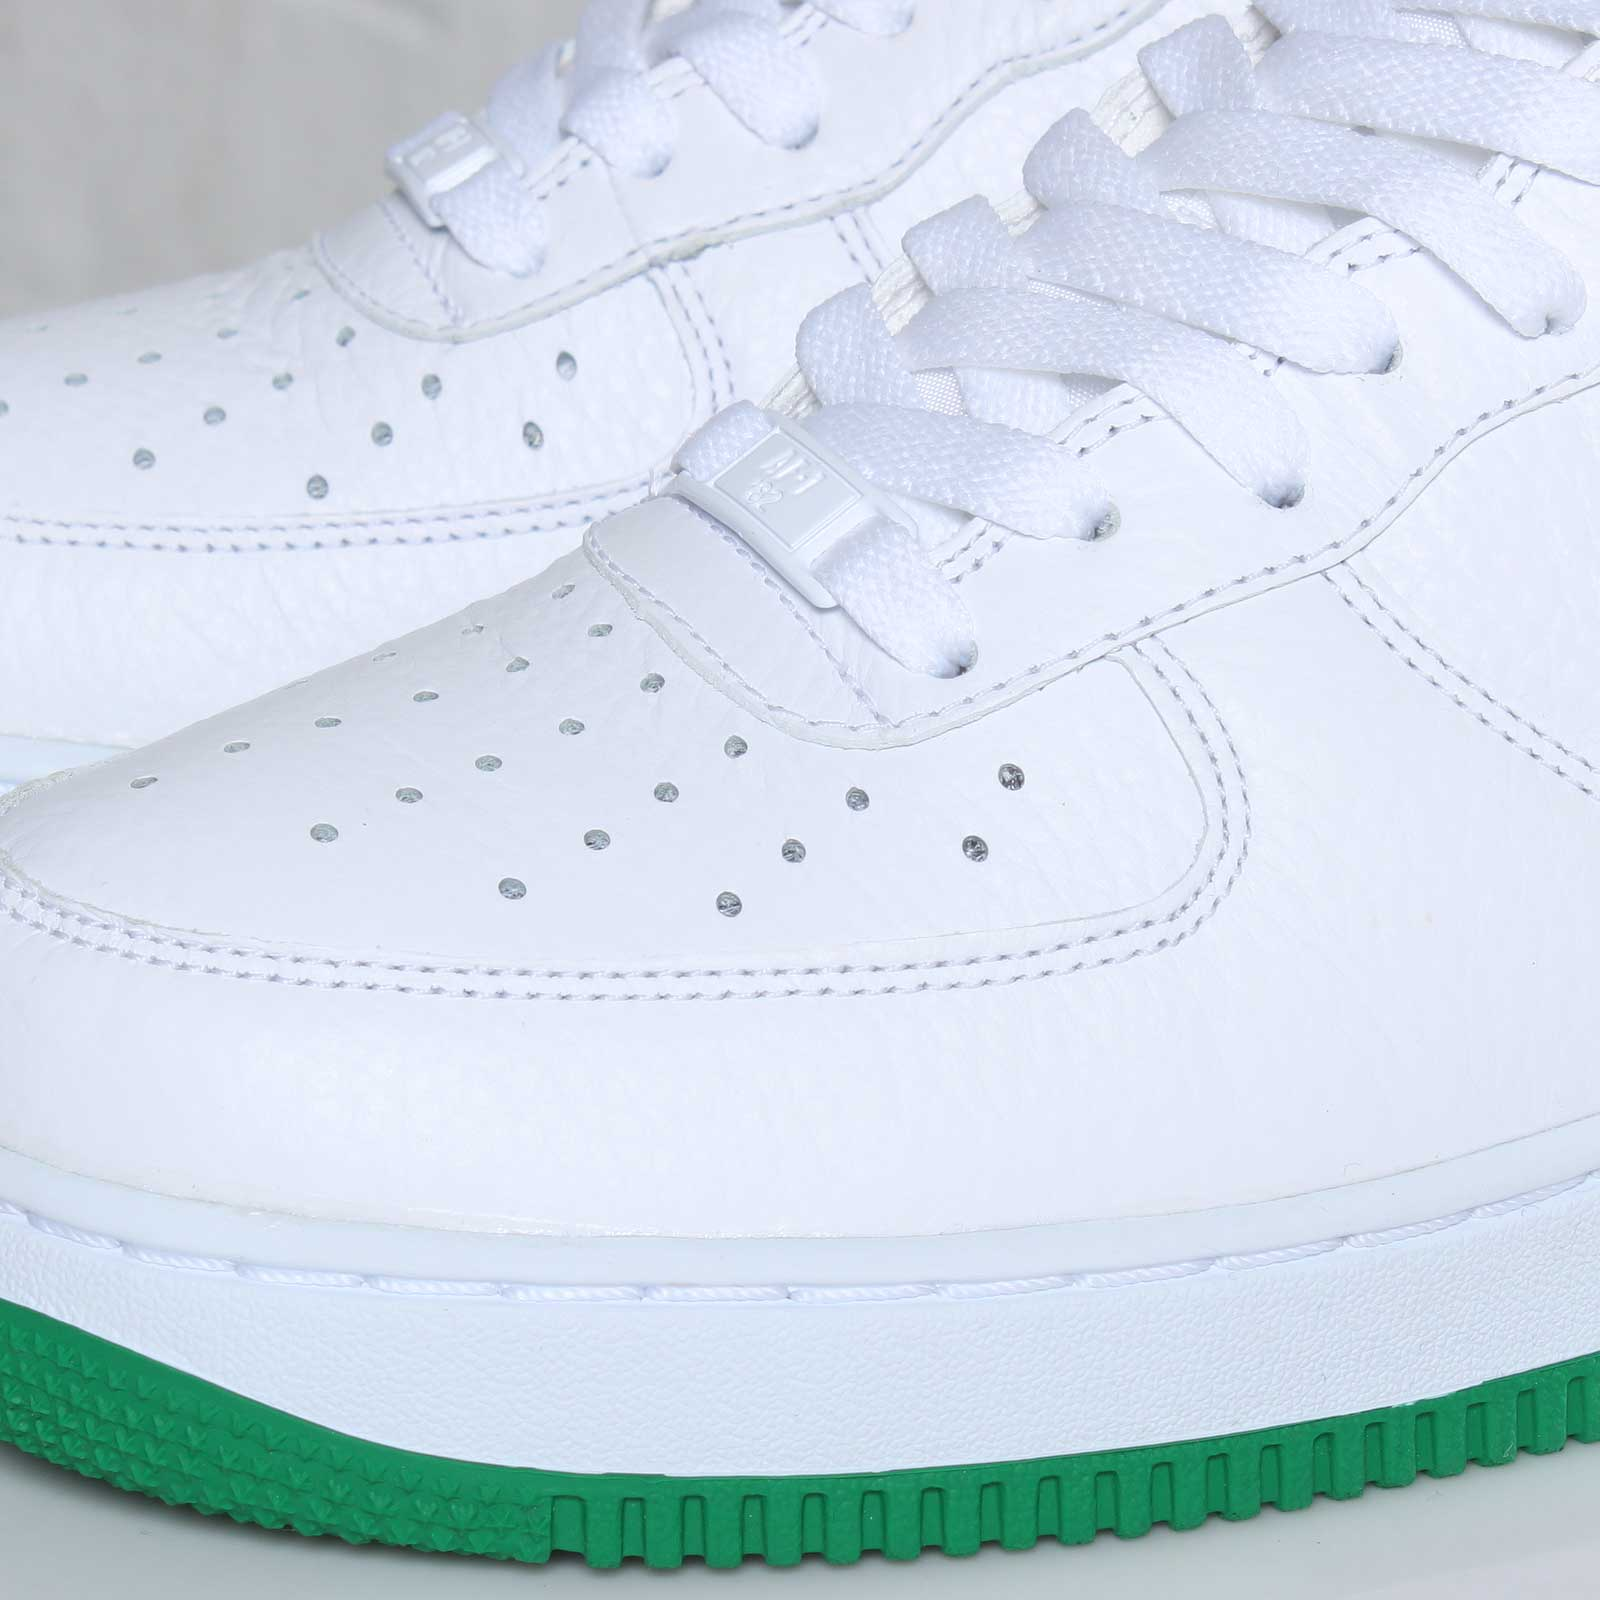 Nike Air Force 1 Low 'White/Court Green' - Available Early